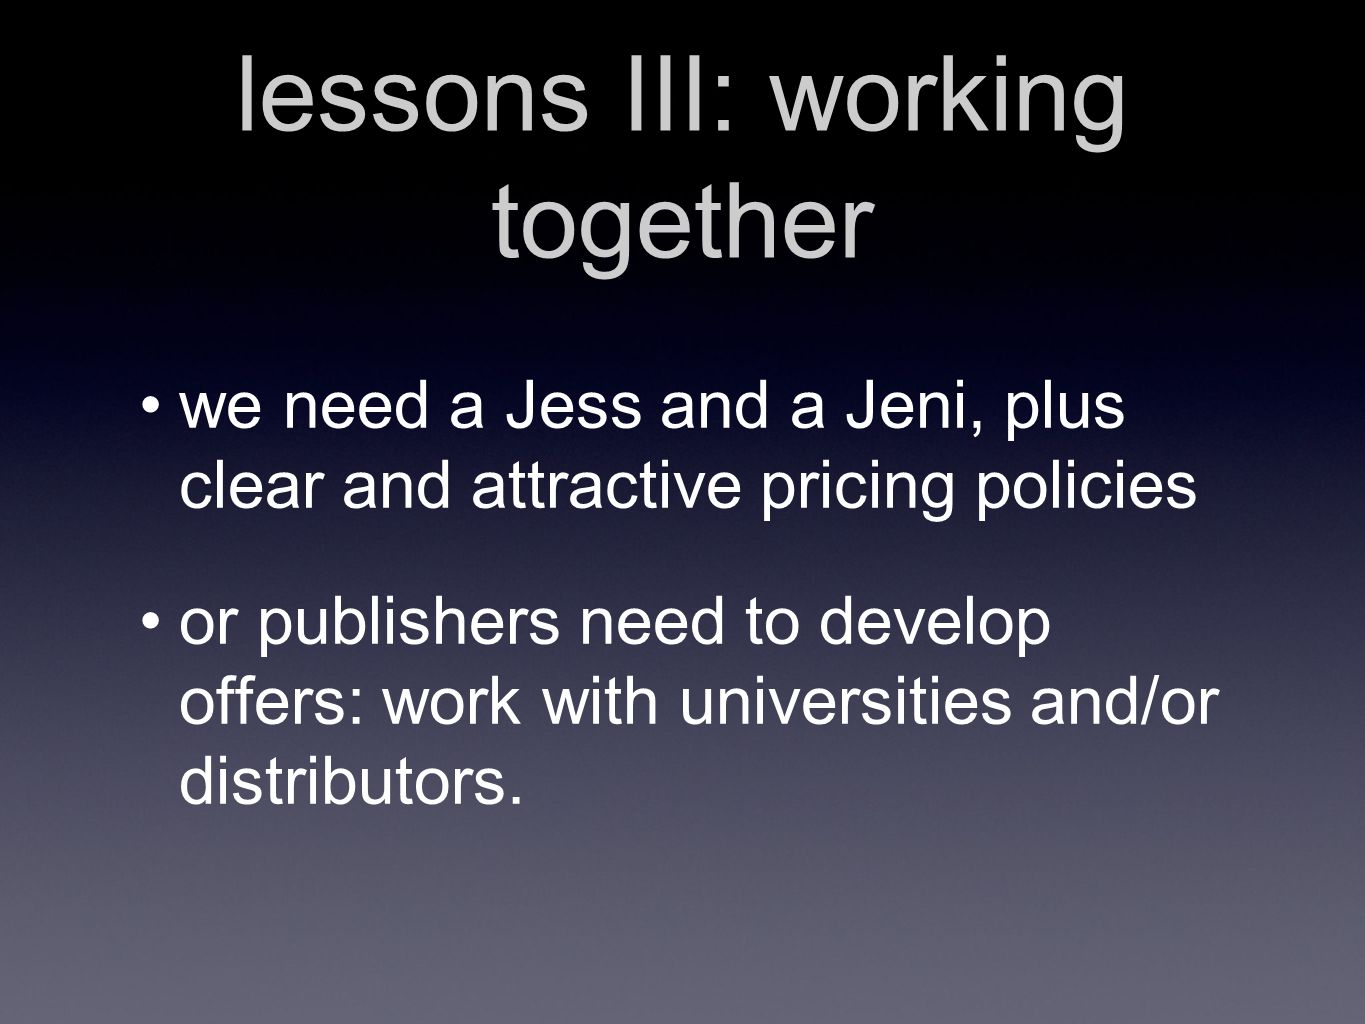 lessons III: working together we need a Jess and a Jeni, plus clear and attractive pricing policies or publishers need to develop offers: work with universities and/or distributors.